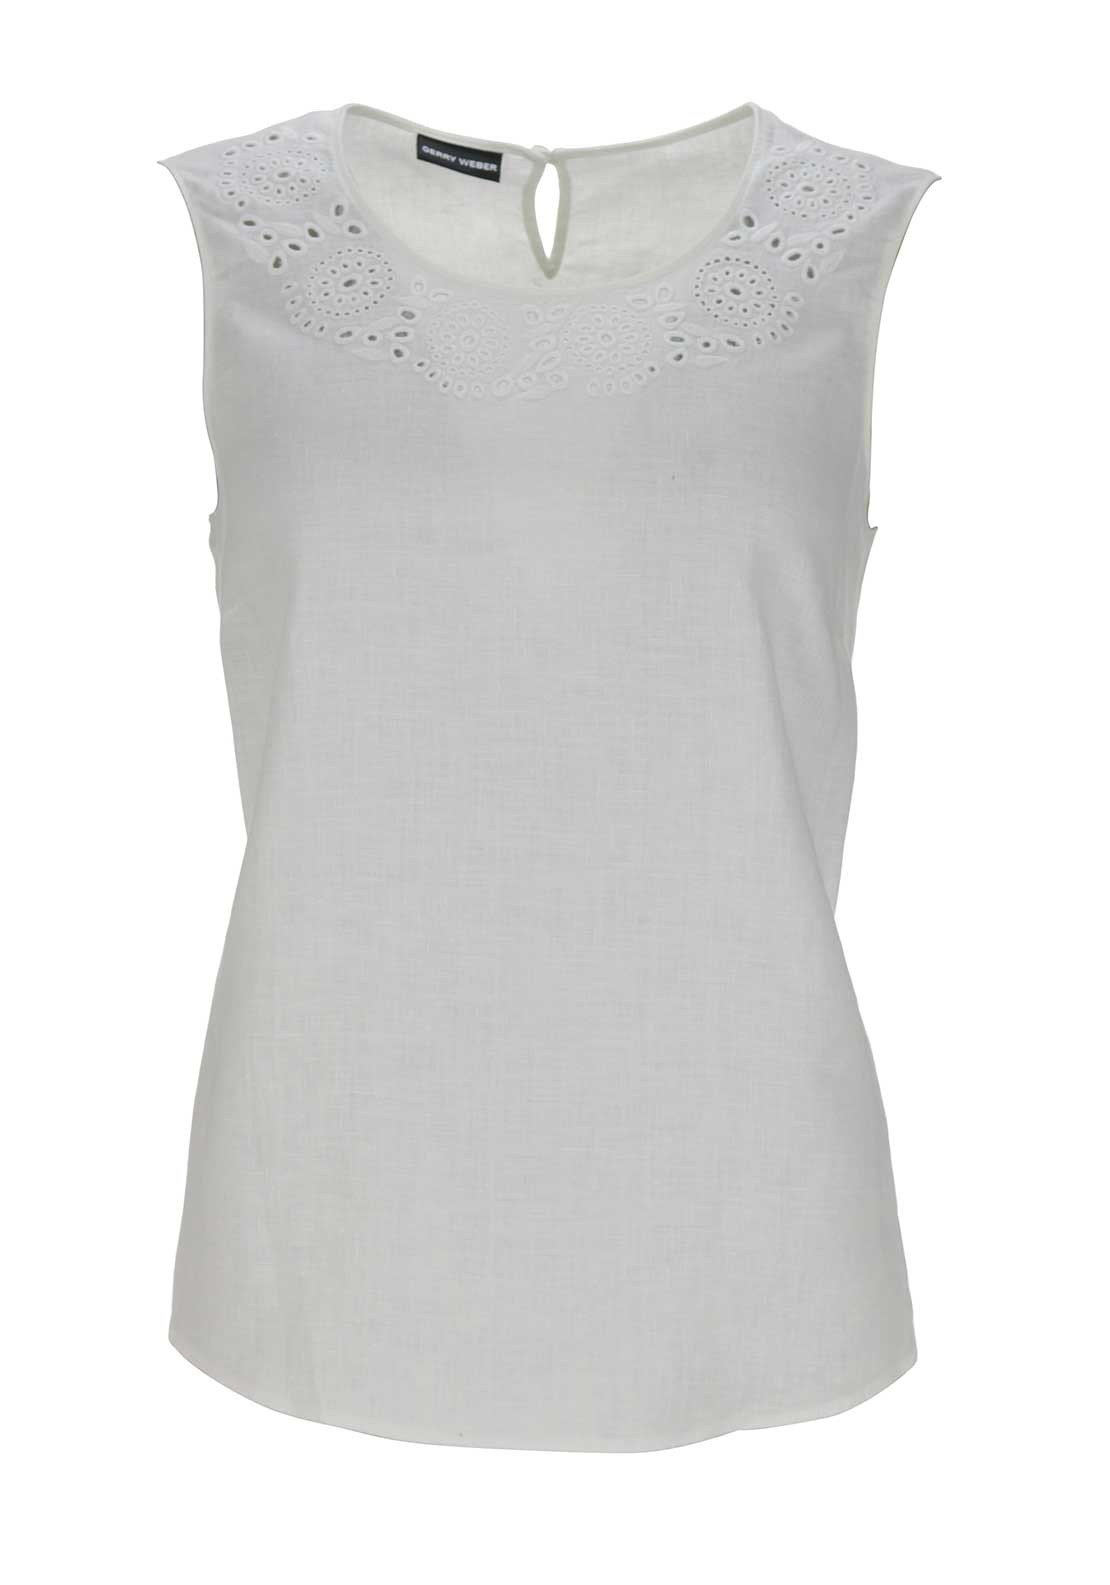 Gerry Weber Laser Cut Print Sleeveless Top, Off-White